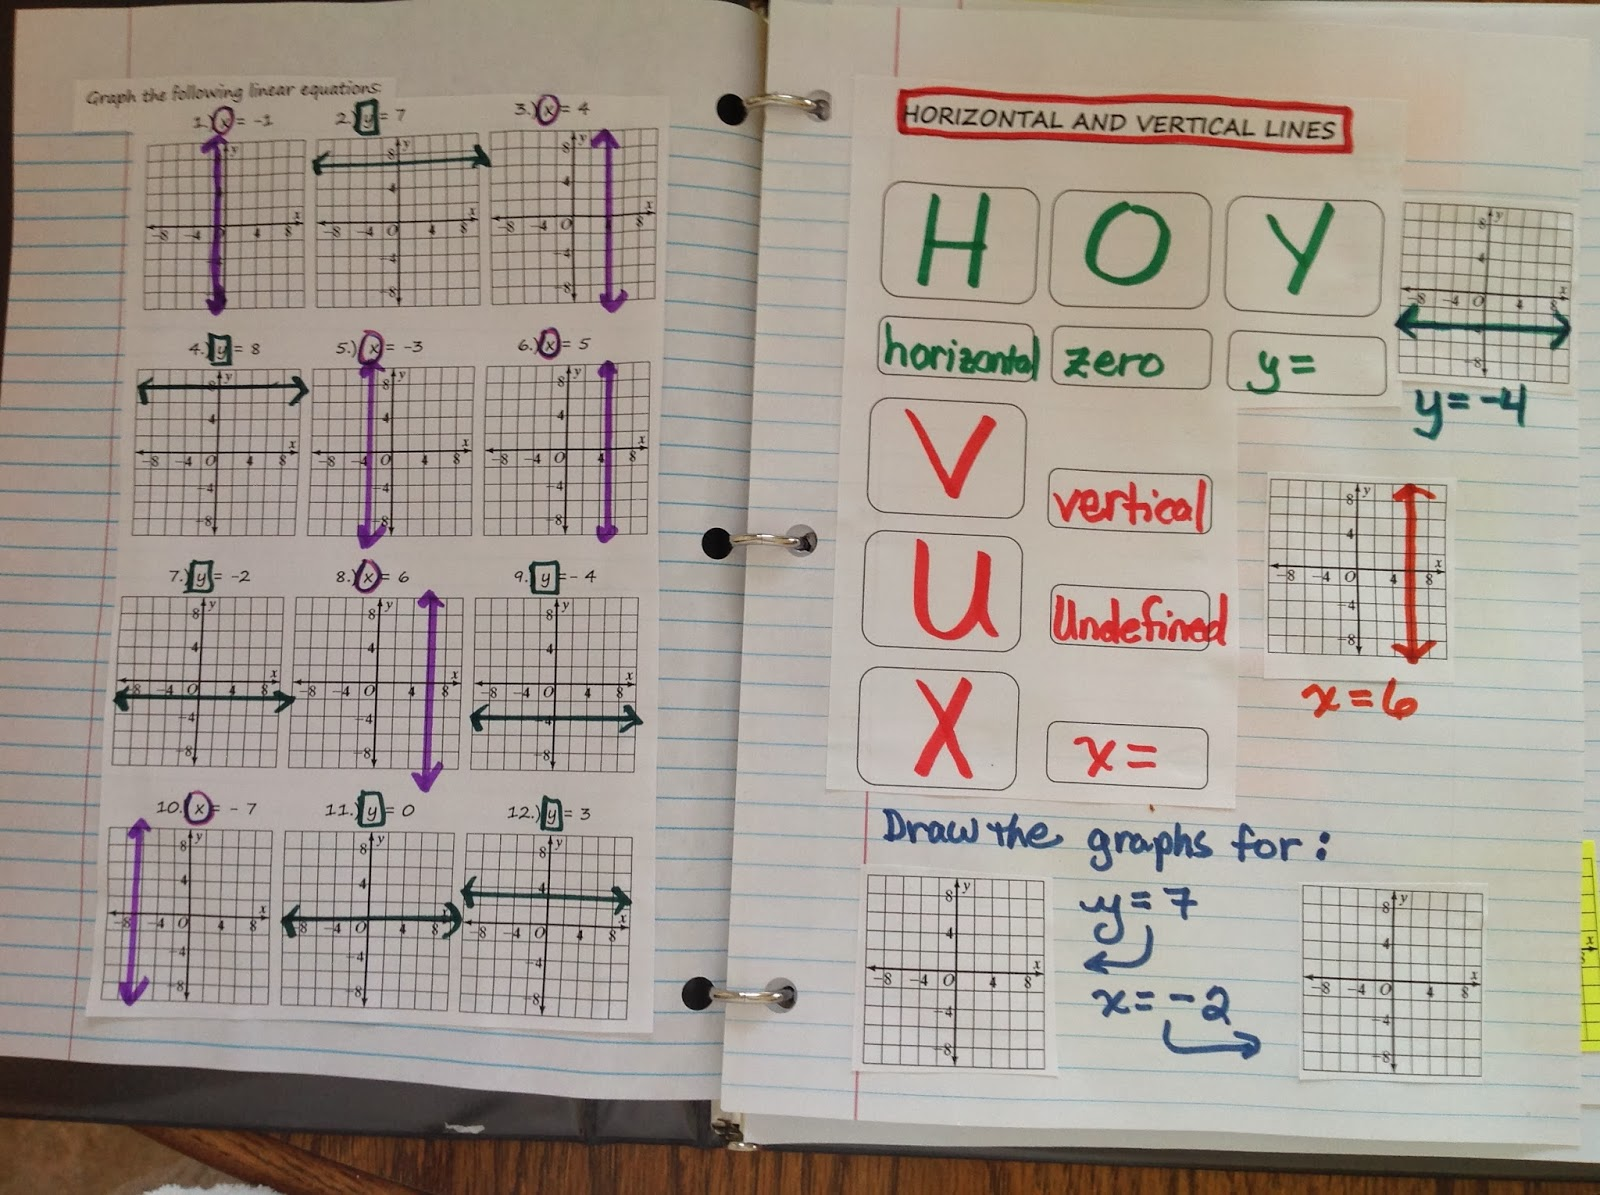 worksheet Graphing Horizontal And Vertical Lines Worksheet equation freak graphing horizontal and vertical lines hoy vux